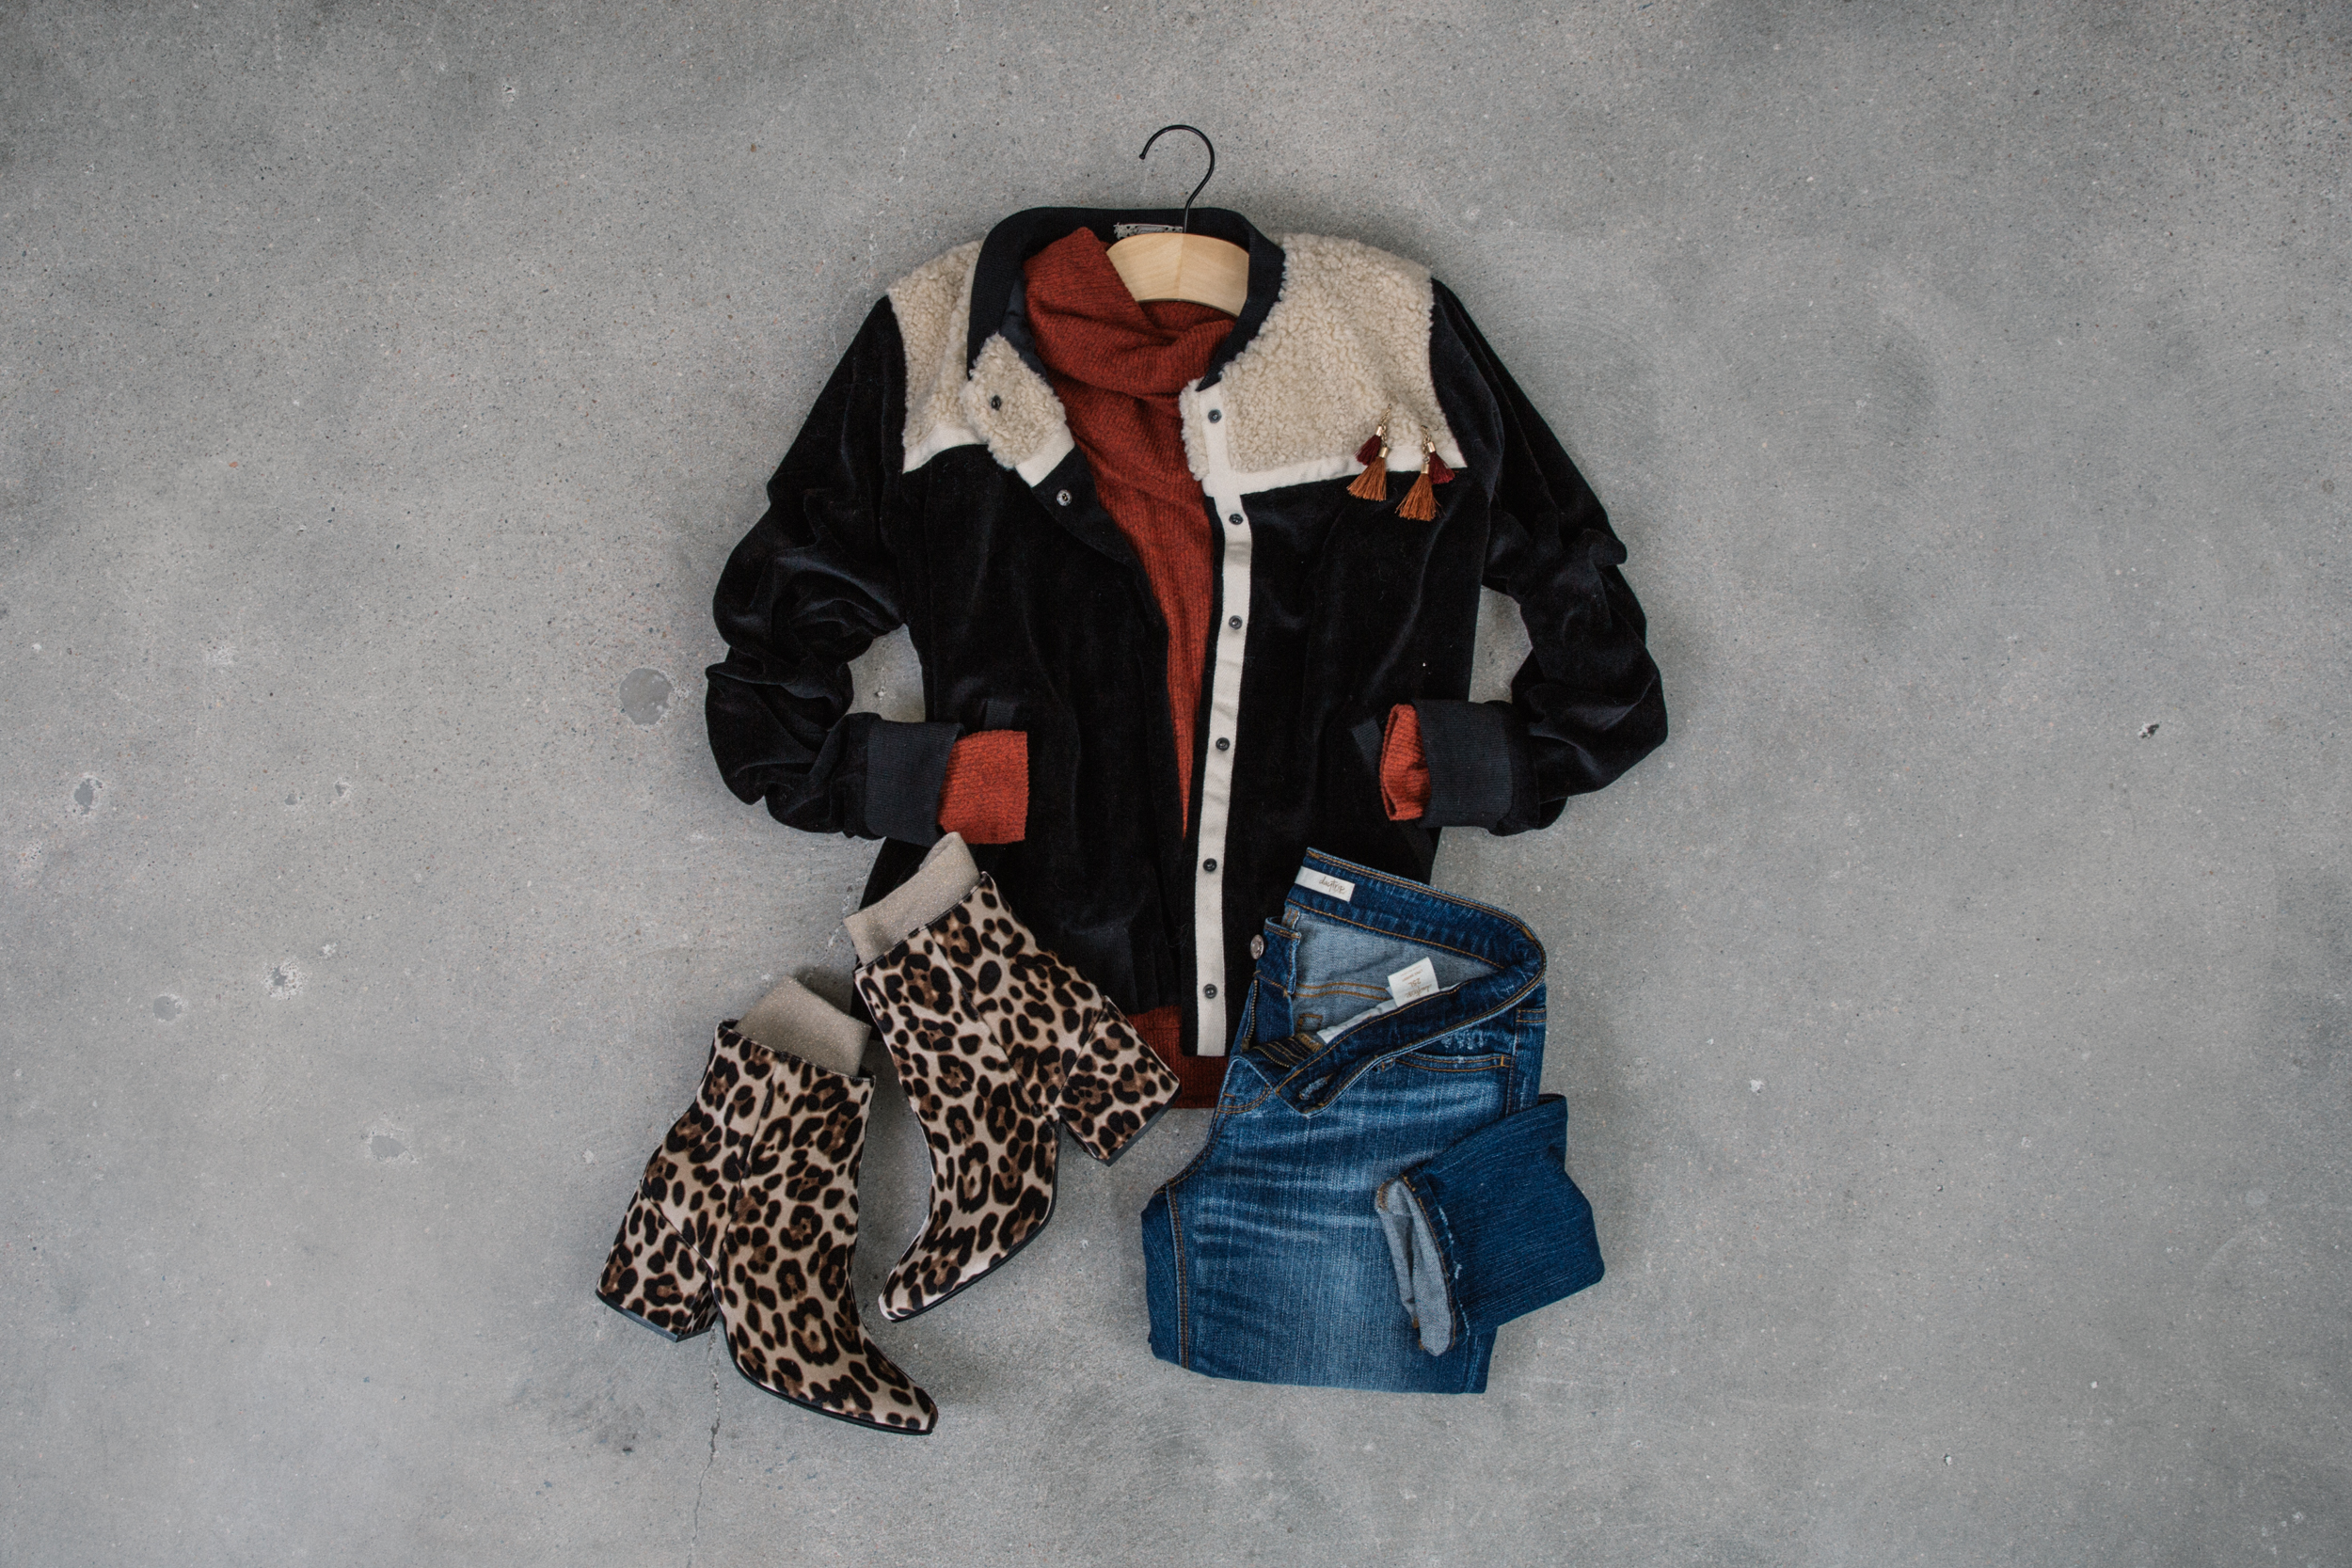 Gimmicks Sherpa Bomber with Steve Madden shoes in leopard print.